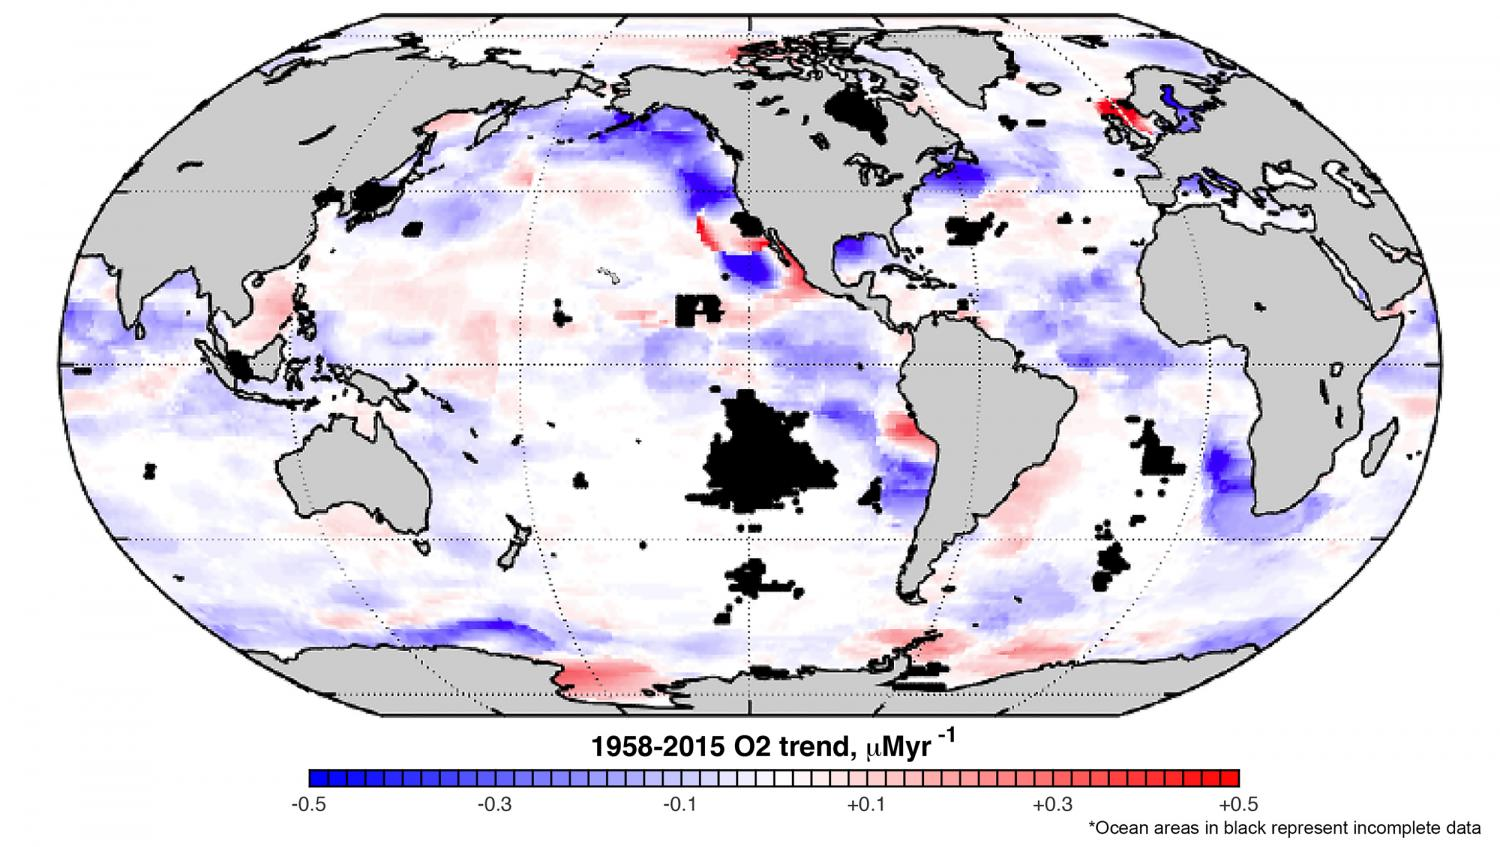 Decades of data on world\'s oceans reveal a troubling oxygen decline